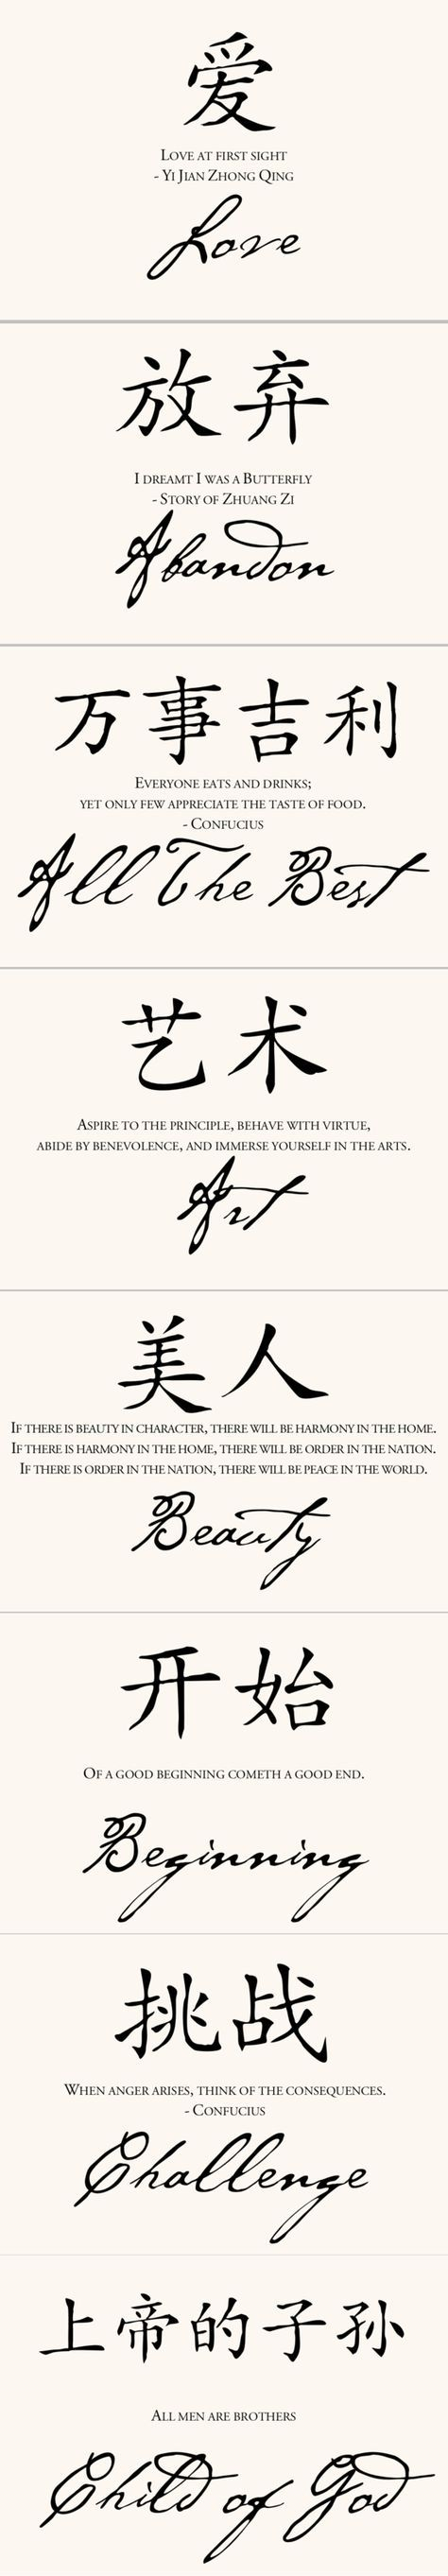 Unique chinese proverbs table names for weddings and special events unique chinese proverbs table names for weddings and special events chinese writing tattooschinese biocorpaavc Images